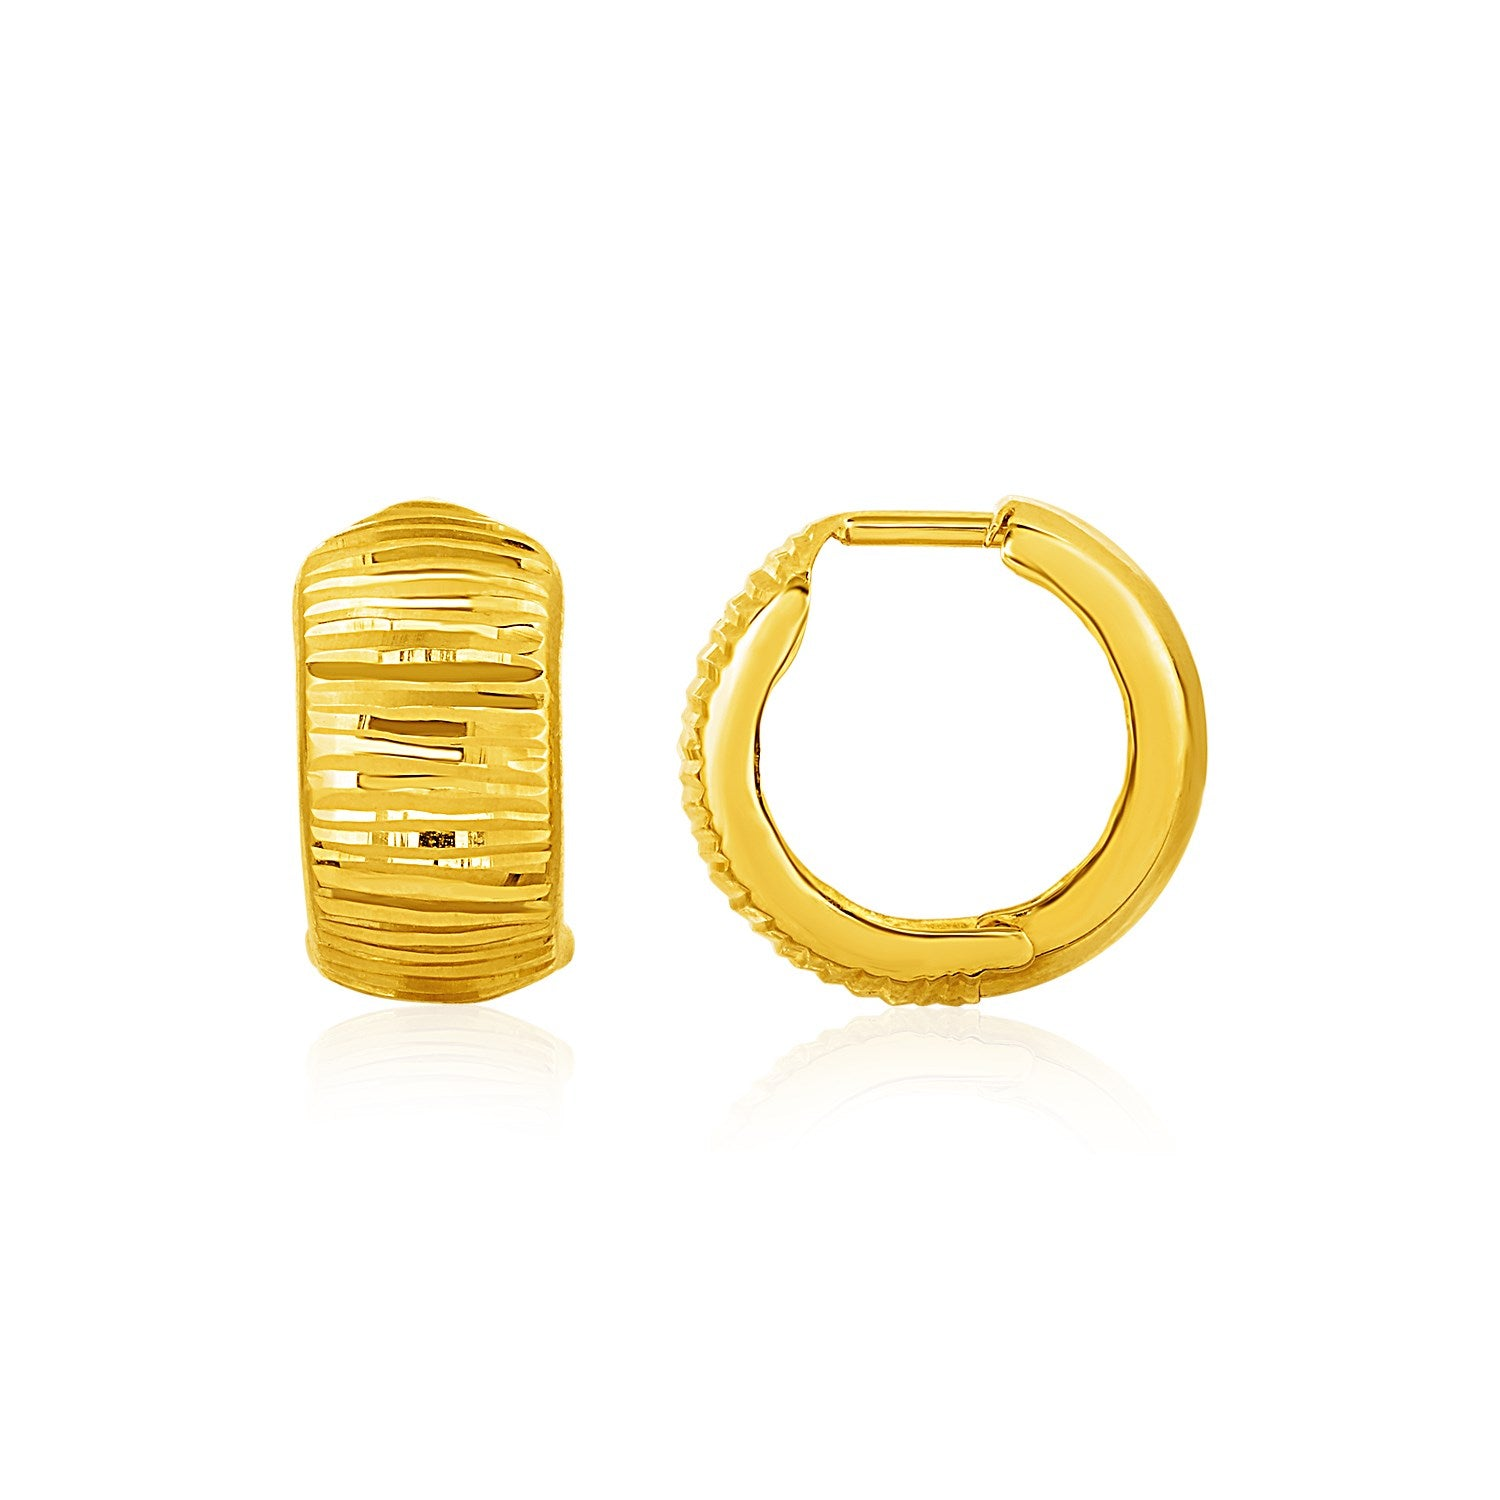 Original New York Style  Reversible Textured and Smooth Snuggable Earrings in 10K Yellow Gold